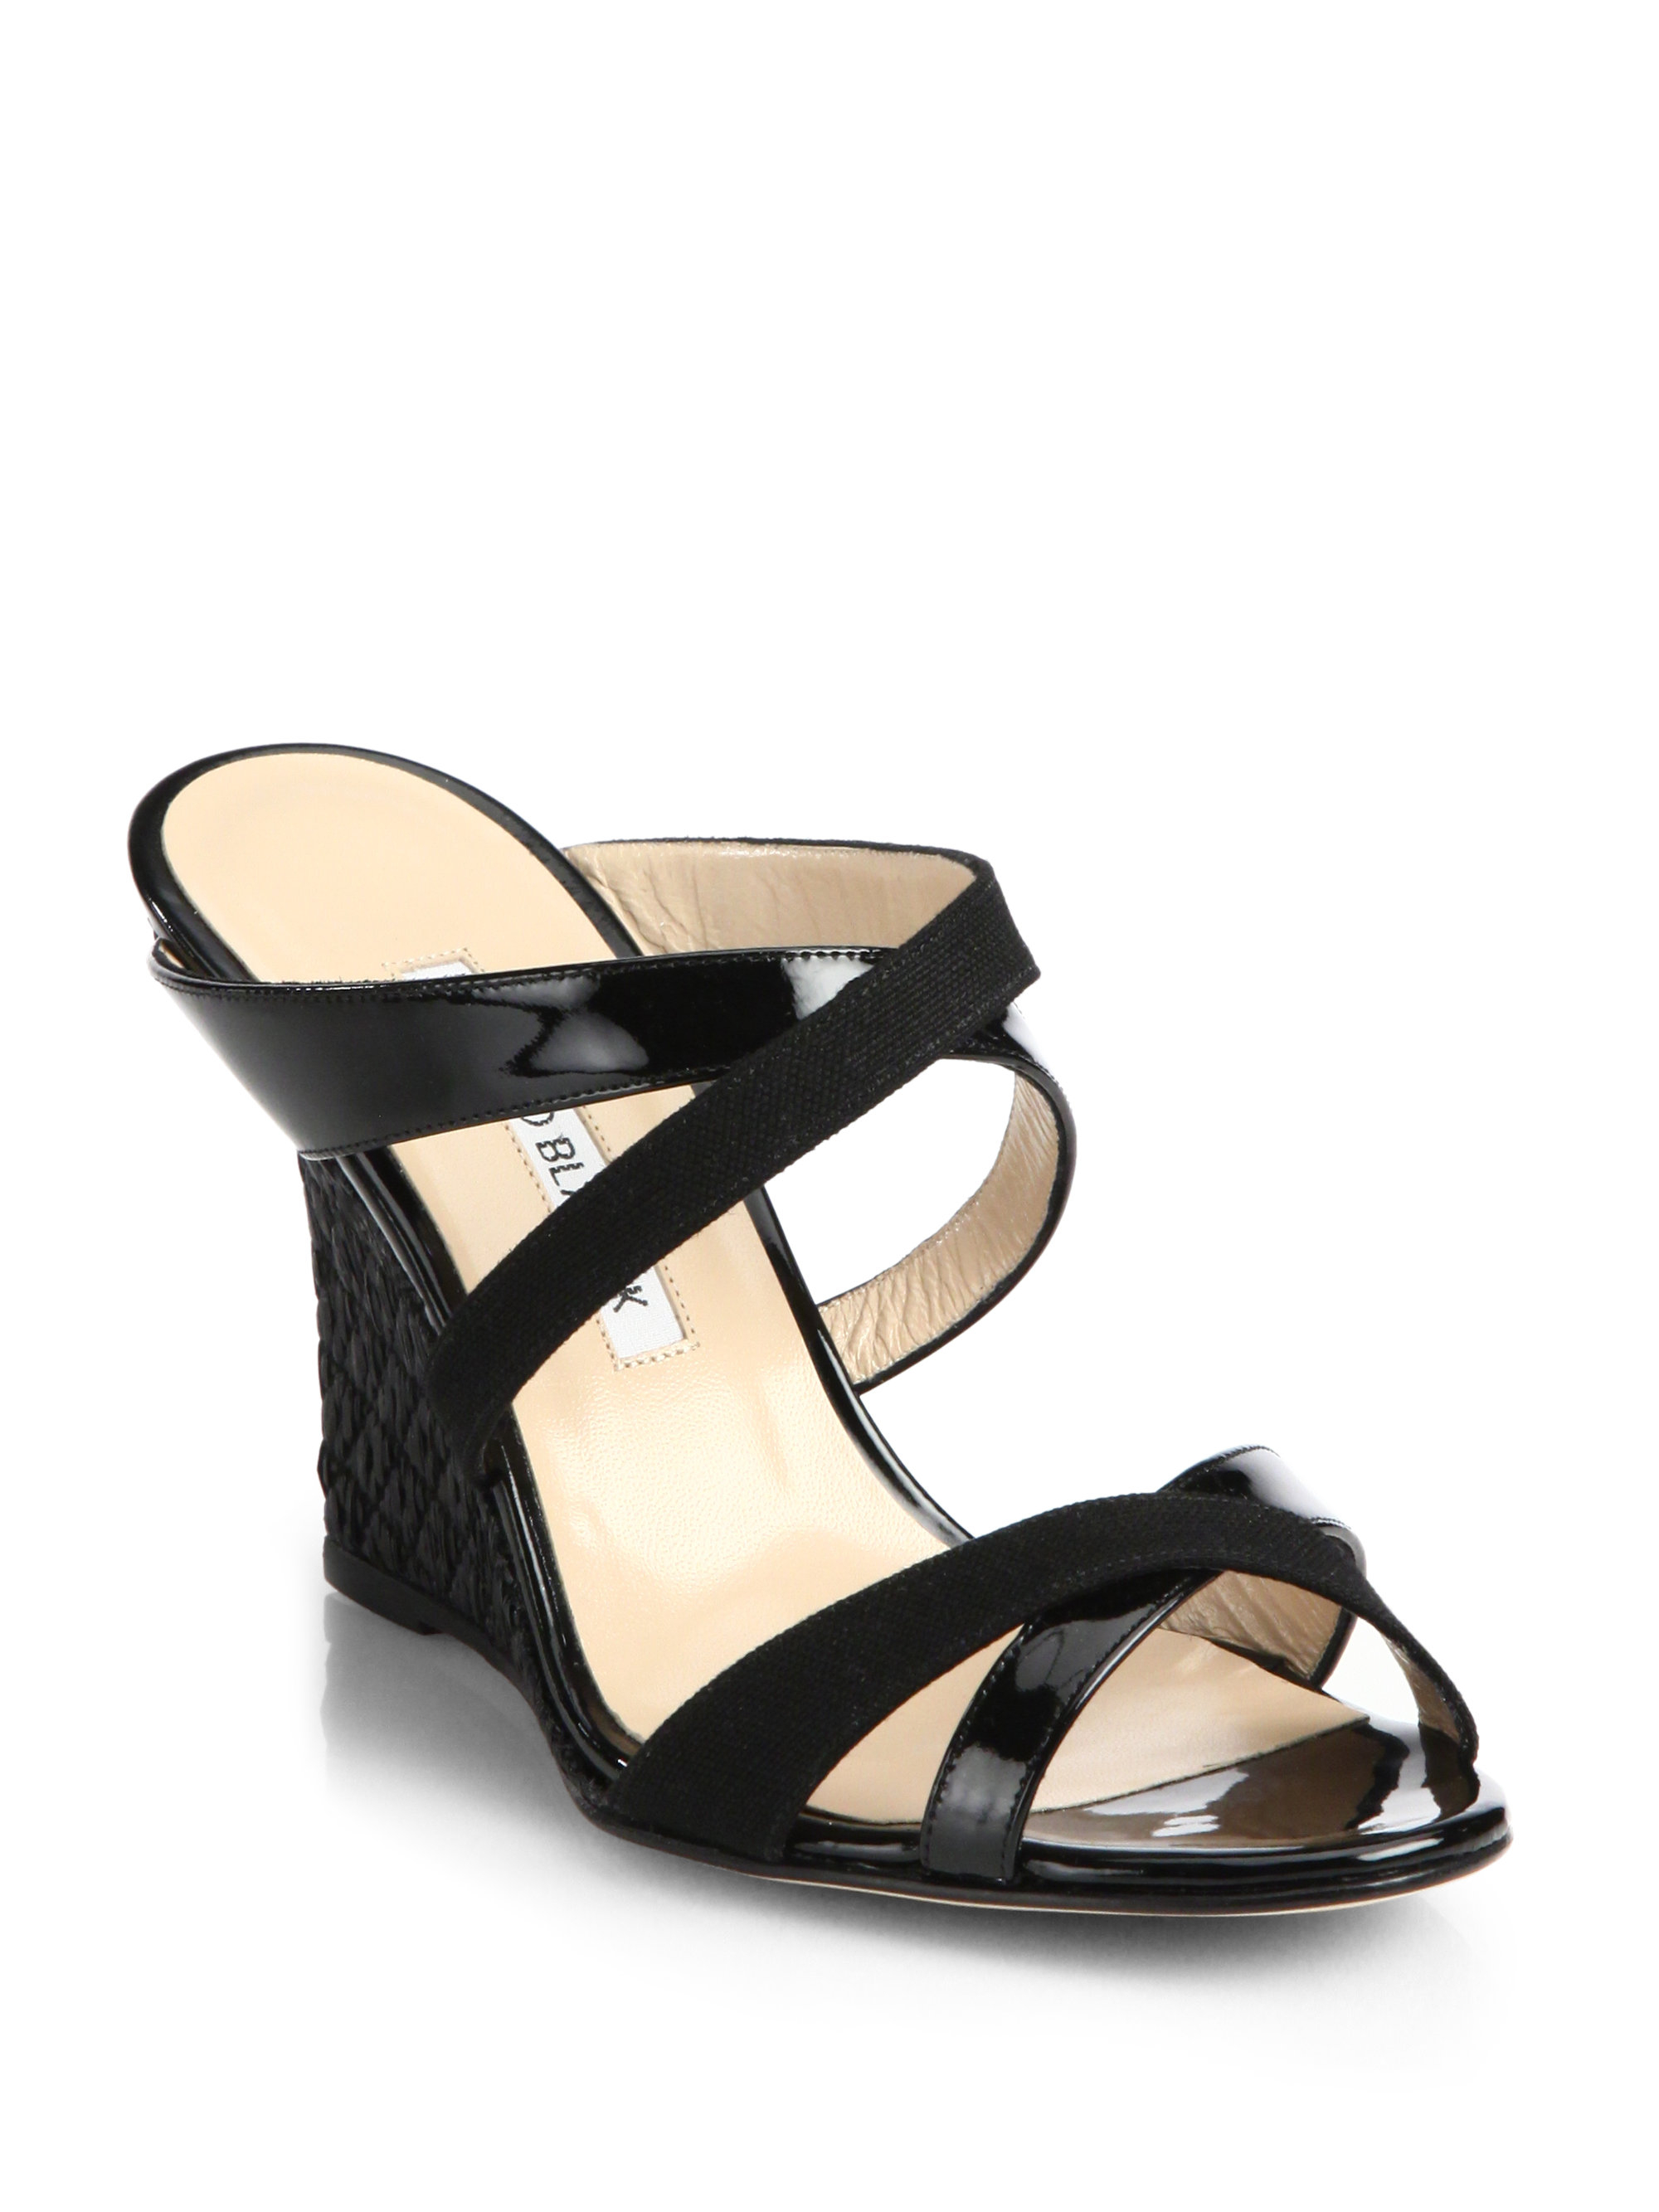 manolo blahnik strappy wedge sandals in black lyst